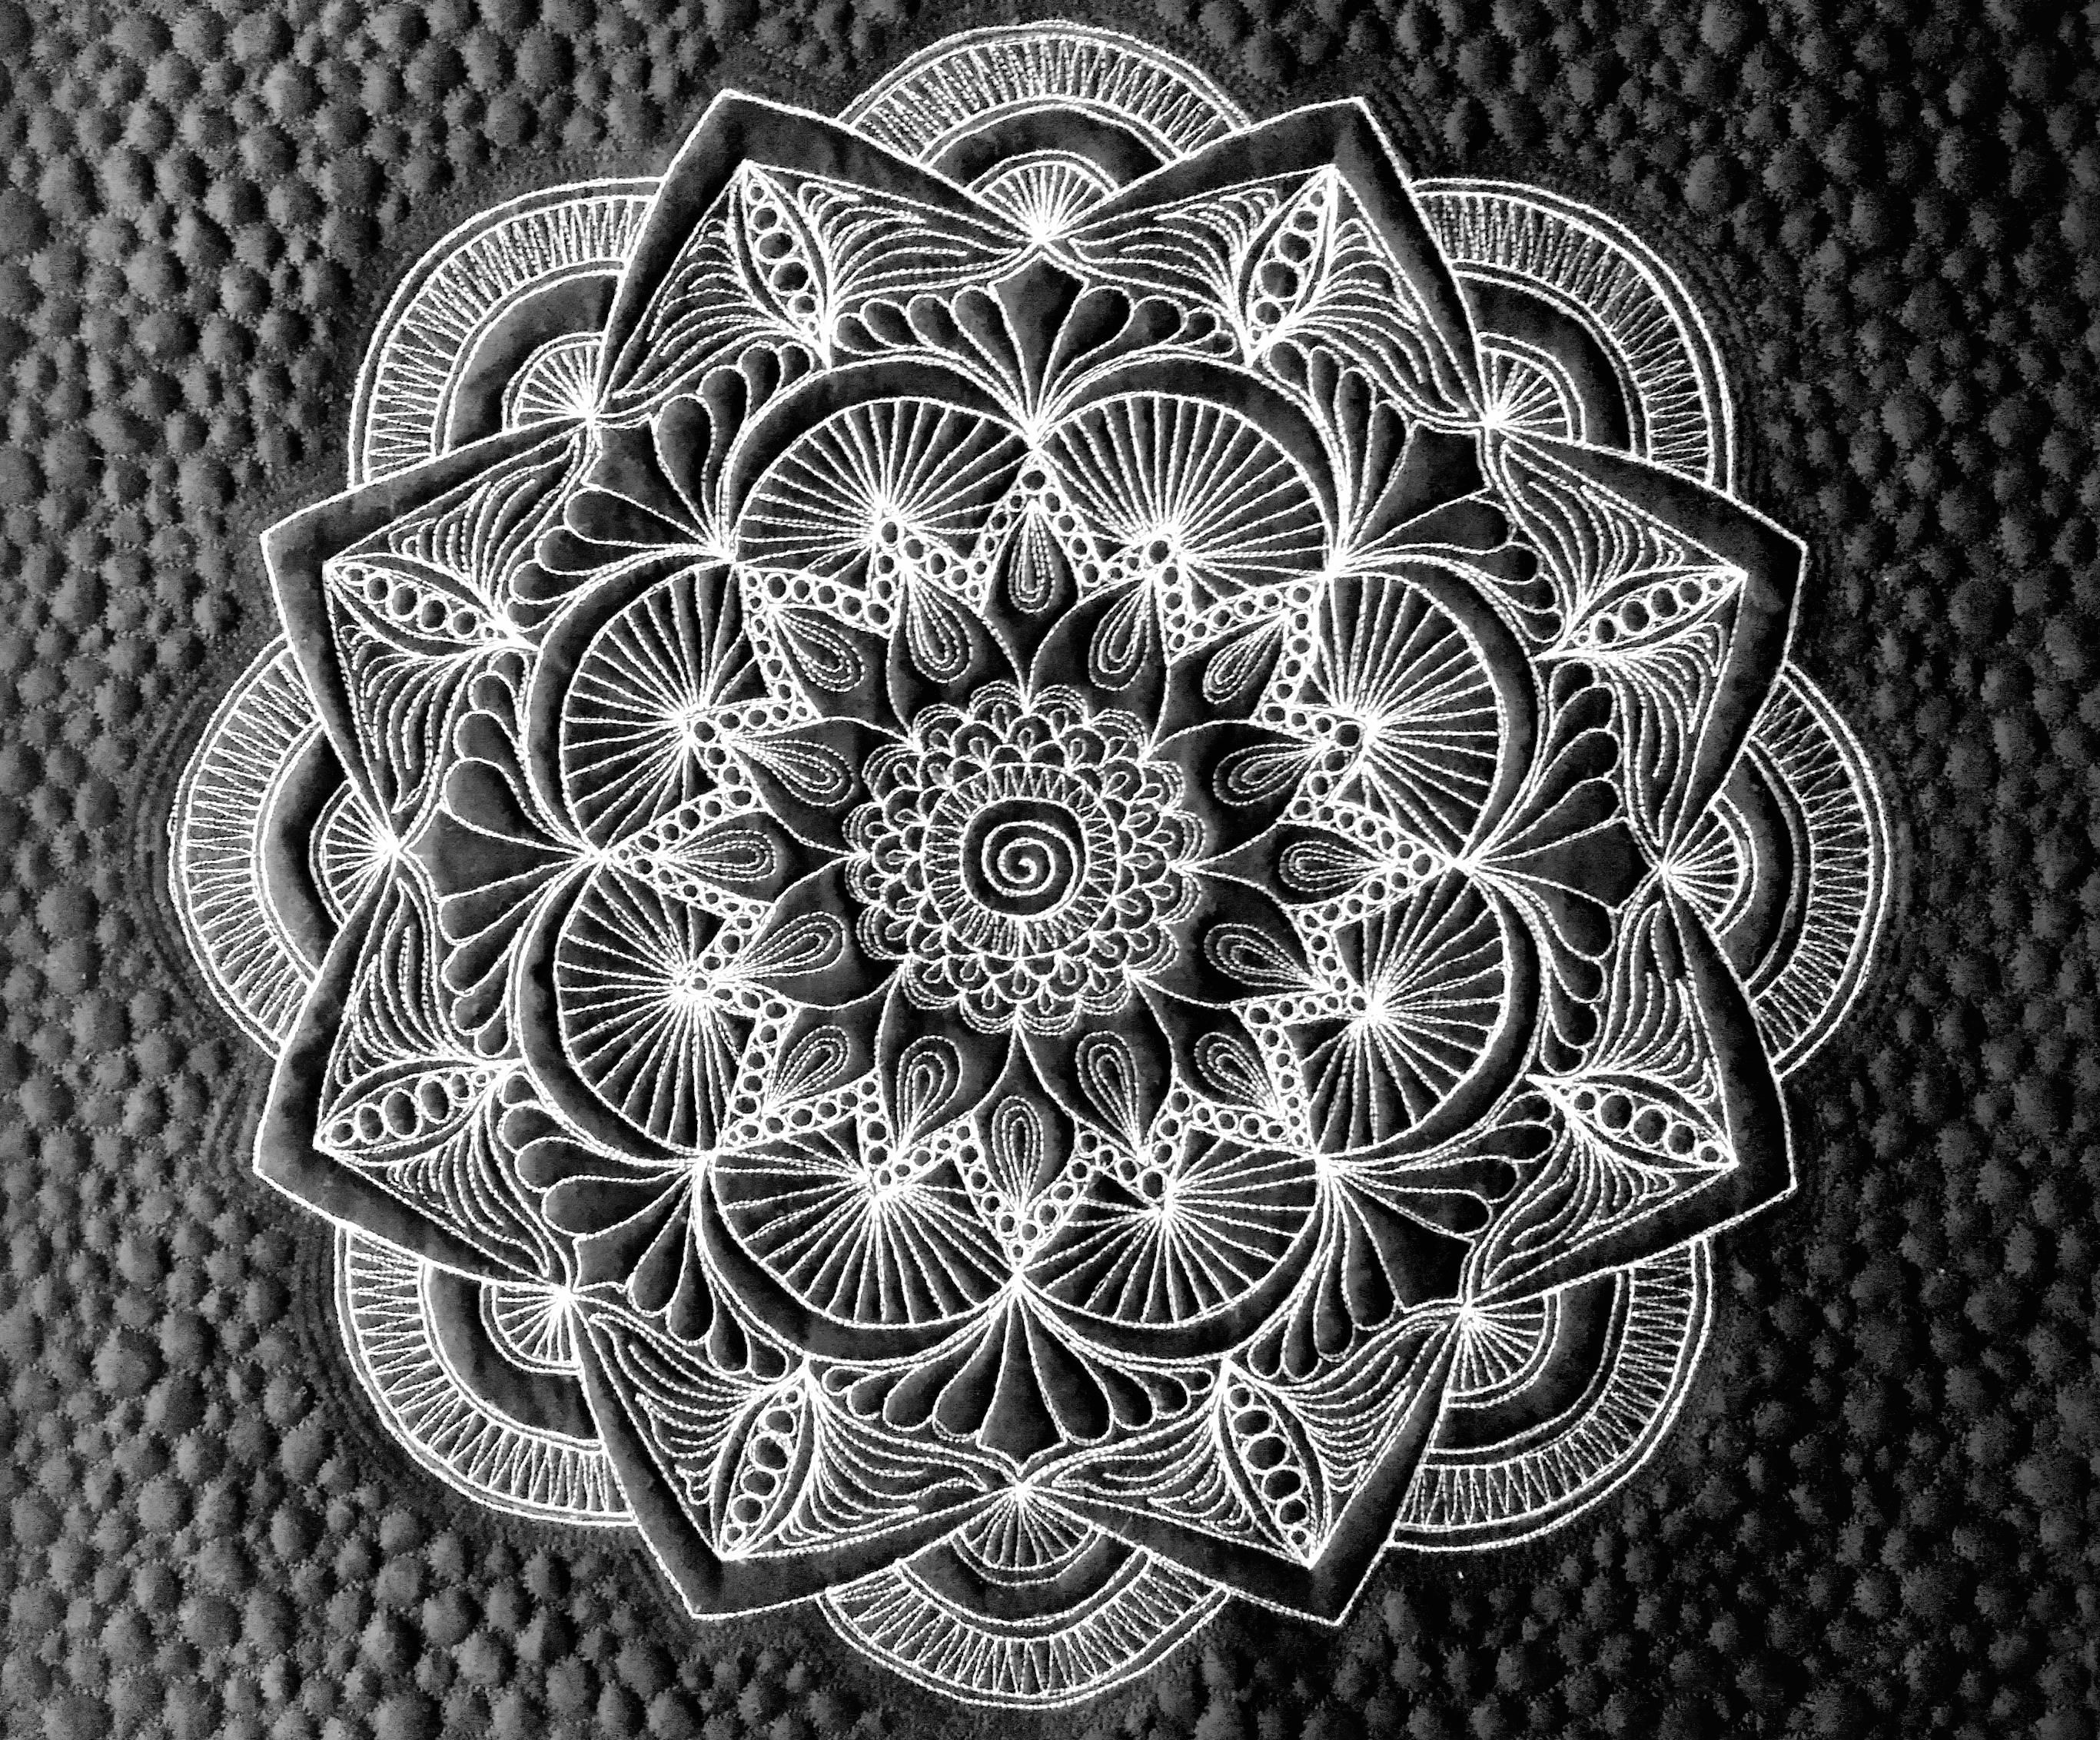 Fabulous Medallion Created By Amy Kraan Using The Circle